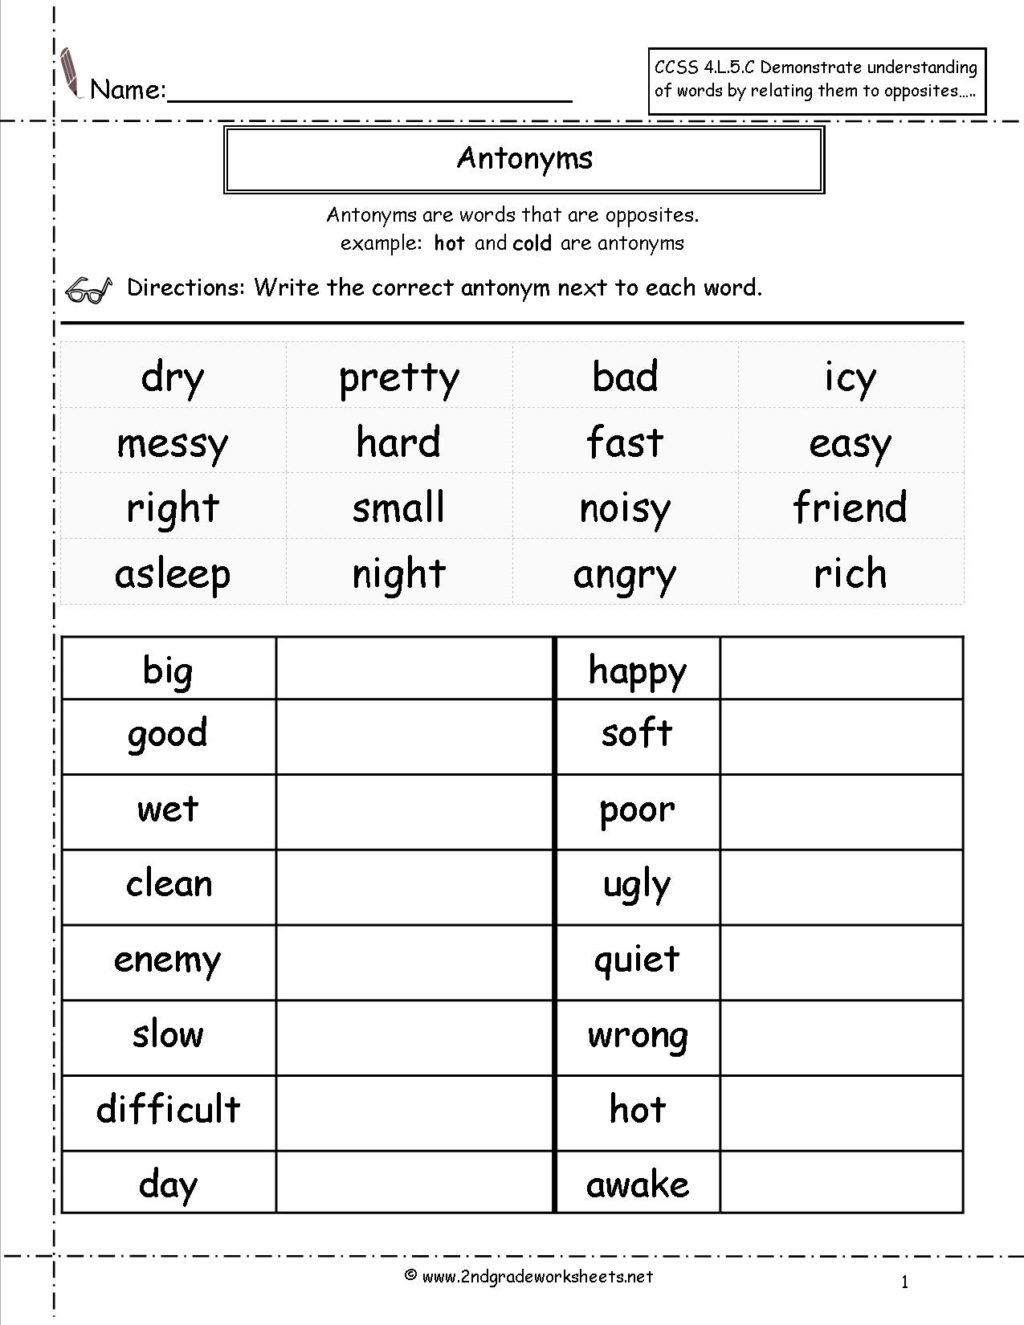 antonyms math worksheet free languagegrammar worksheets and printouts printable for 2nd grade reading prehension 1024x1325